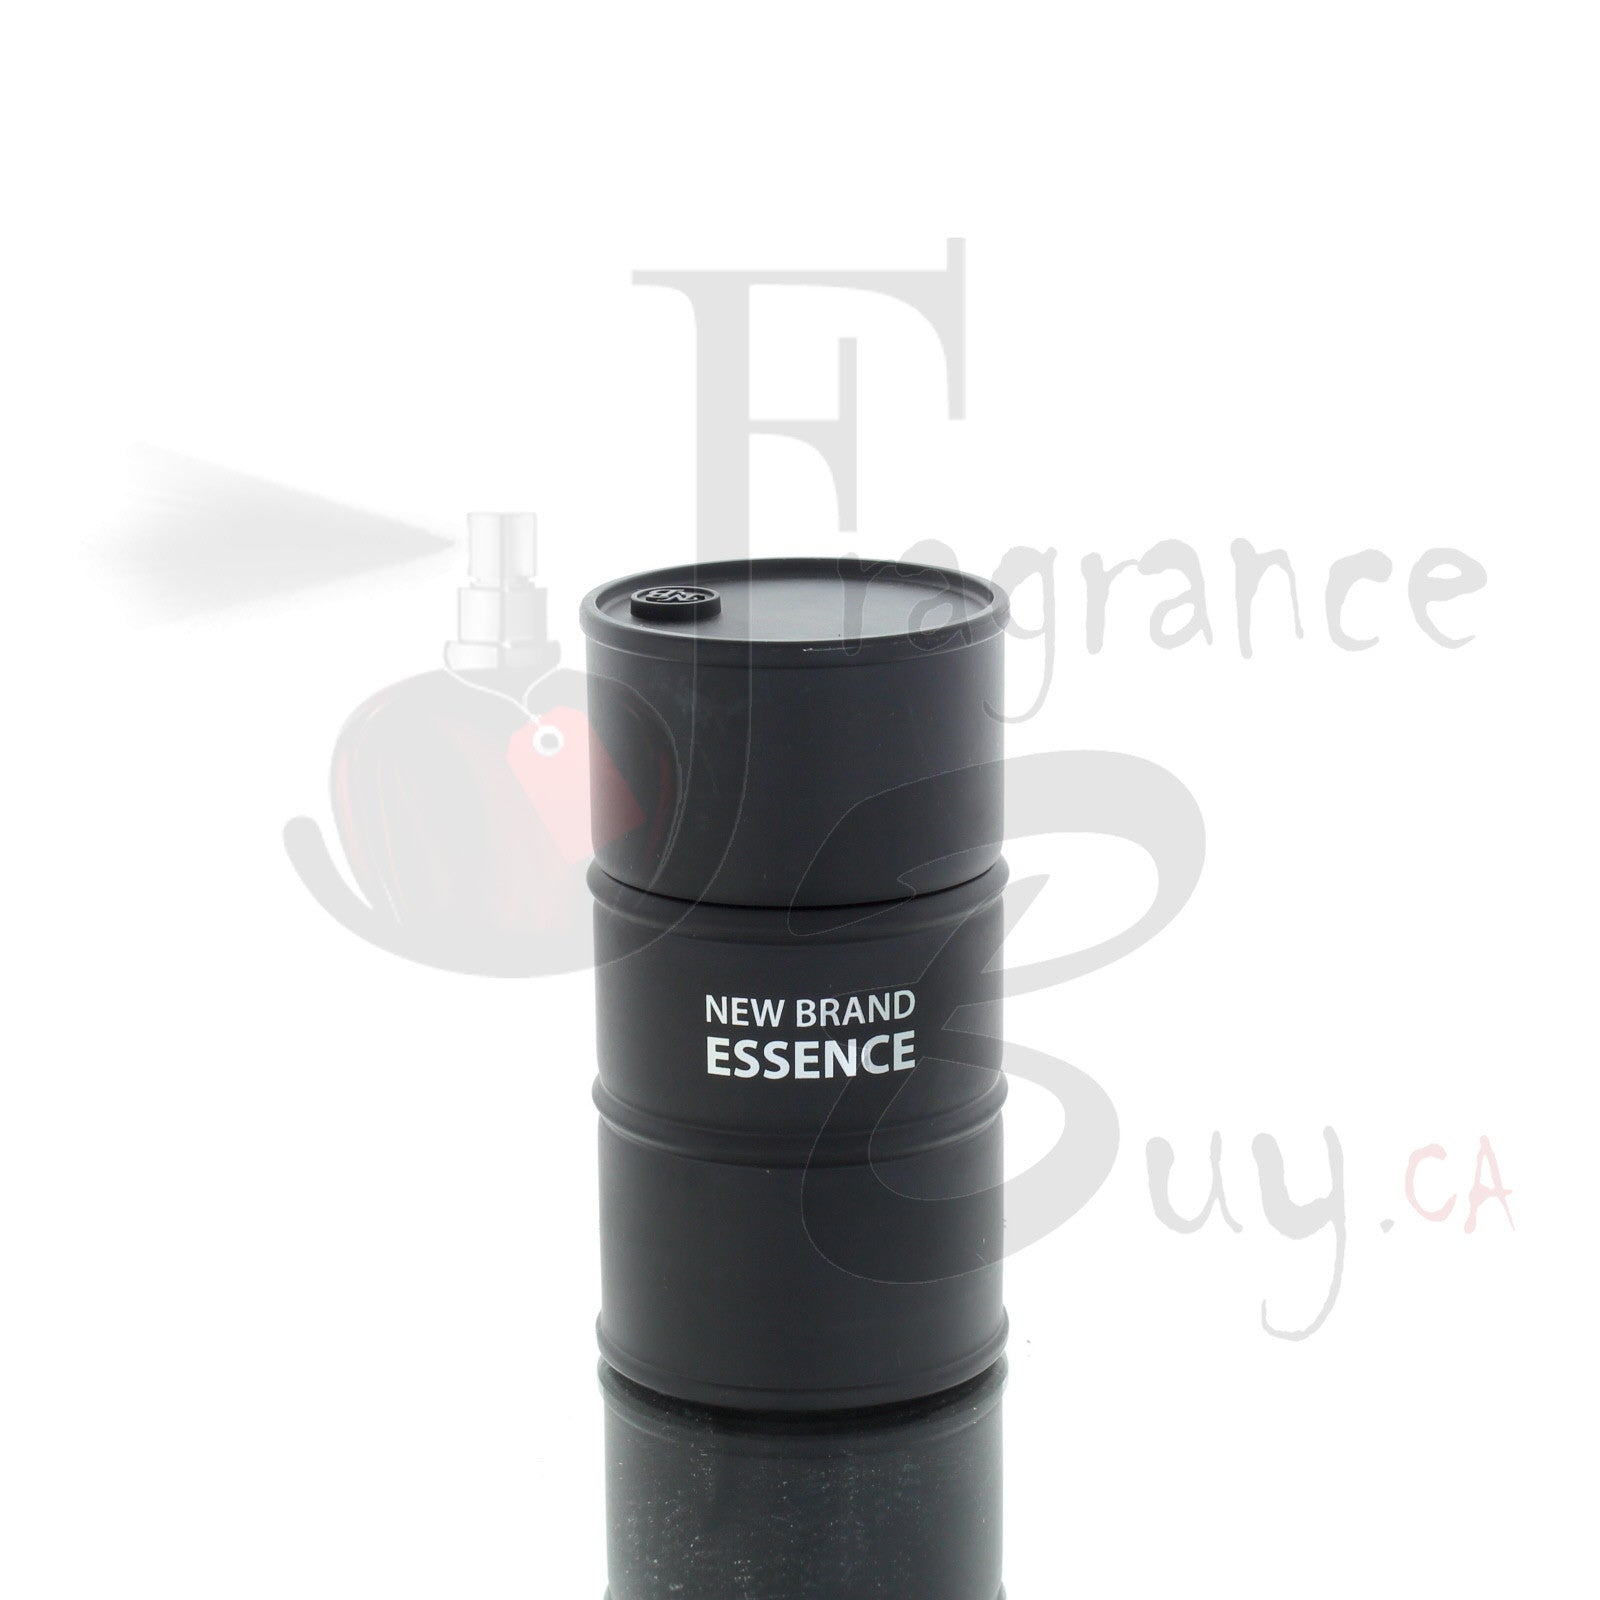 Essence (The Ultimate Sauvage Twist) by New Brand For Man